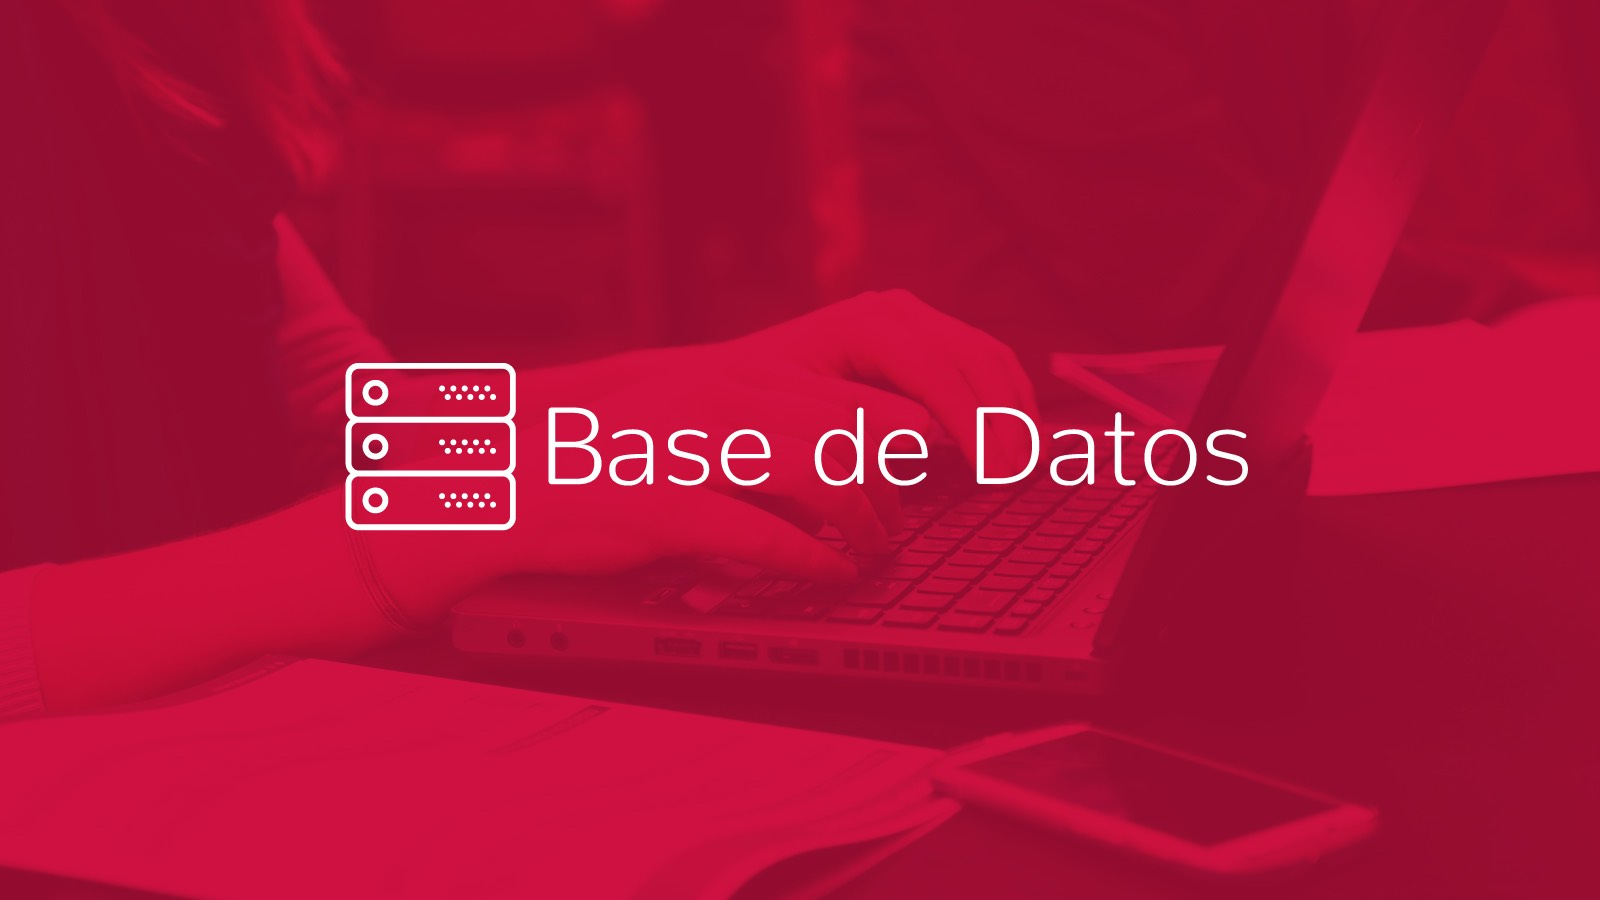 Especialización Técnica - Base de Datos